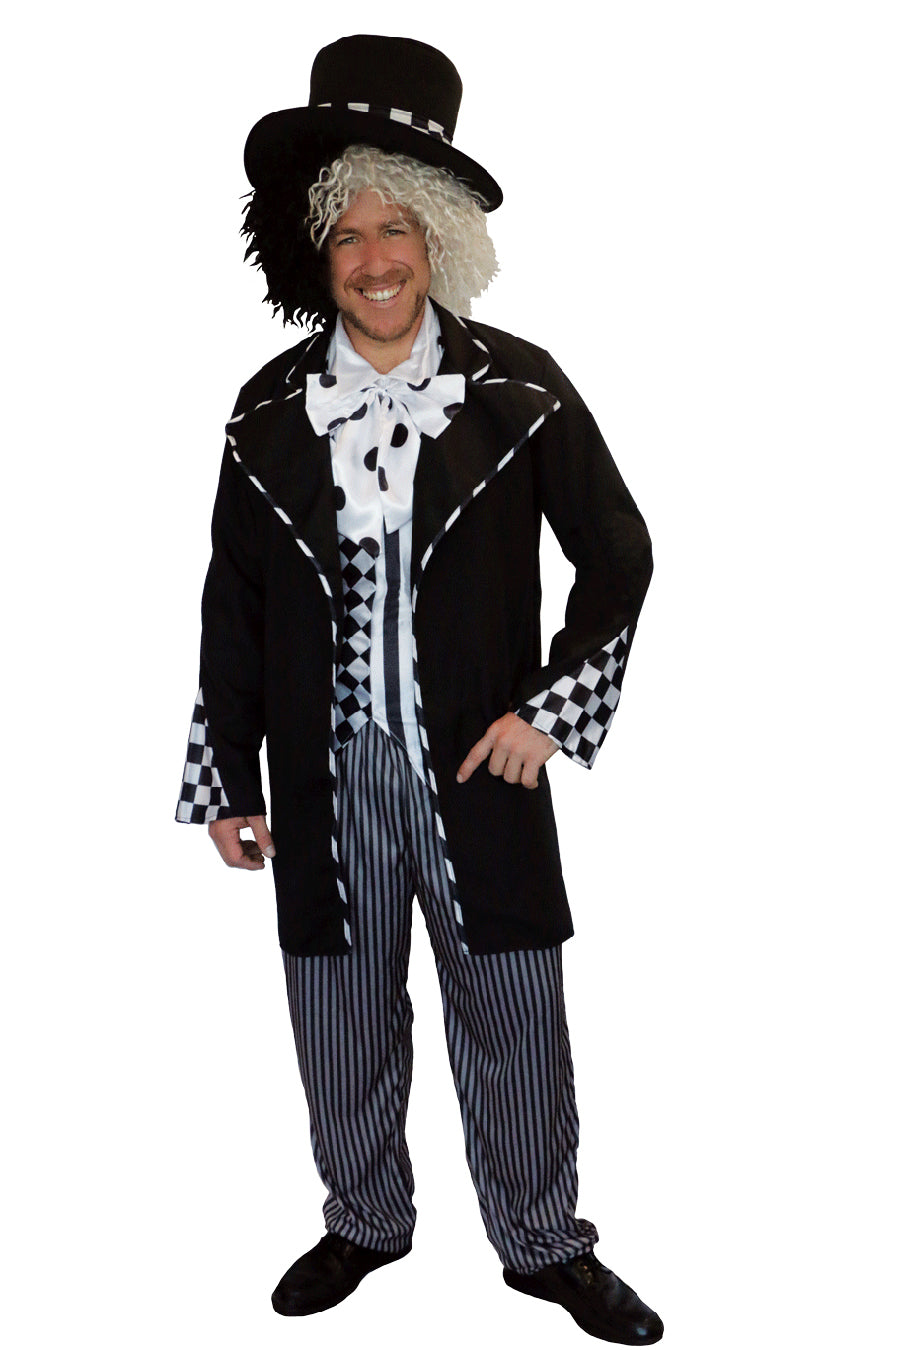 DARK MAD HATTER COSTUME, ADULT - SIZE XL